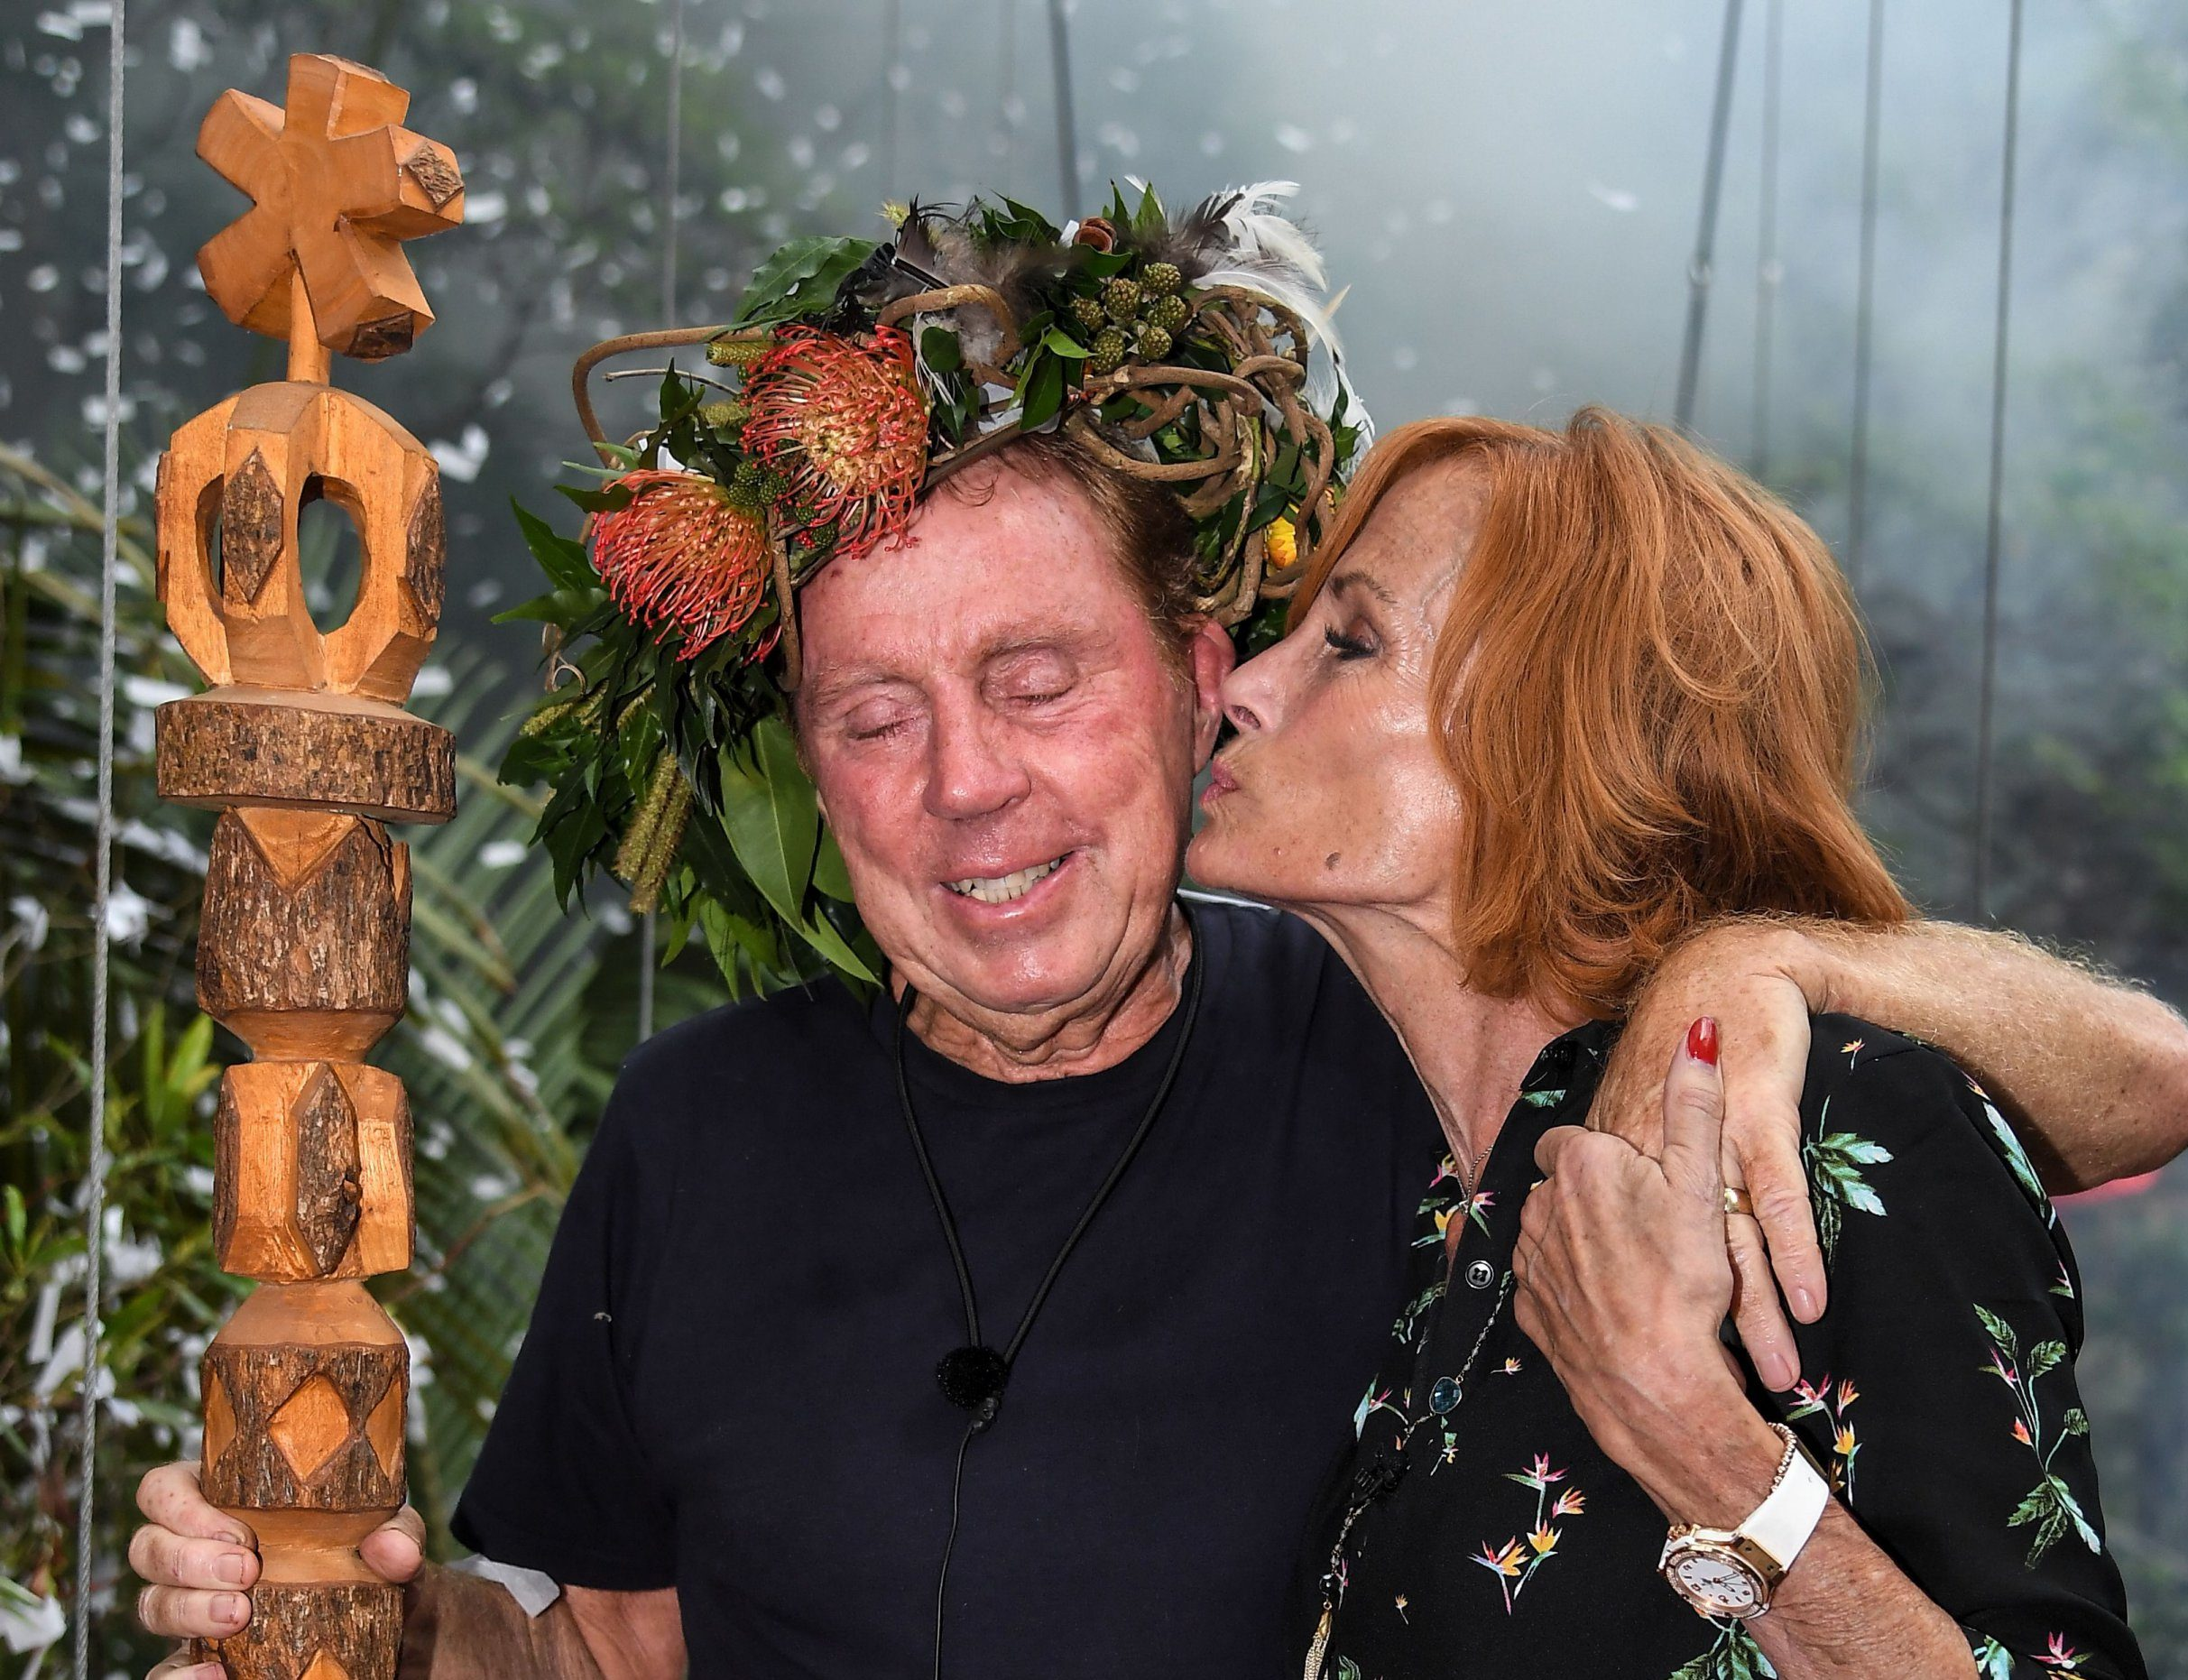 Editorial use only Mandatory Credit: Photo by James Gourley/ITV/REX (10019593r) Harry Redknapp is crowned King of the Jungle and is joined by wife Sandra Redknapp 'I'm a Celebrity... Get Me Out of Here!' TV Show, Series 18, Australia - 09 Dec 2018